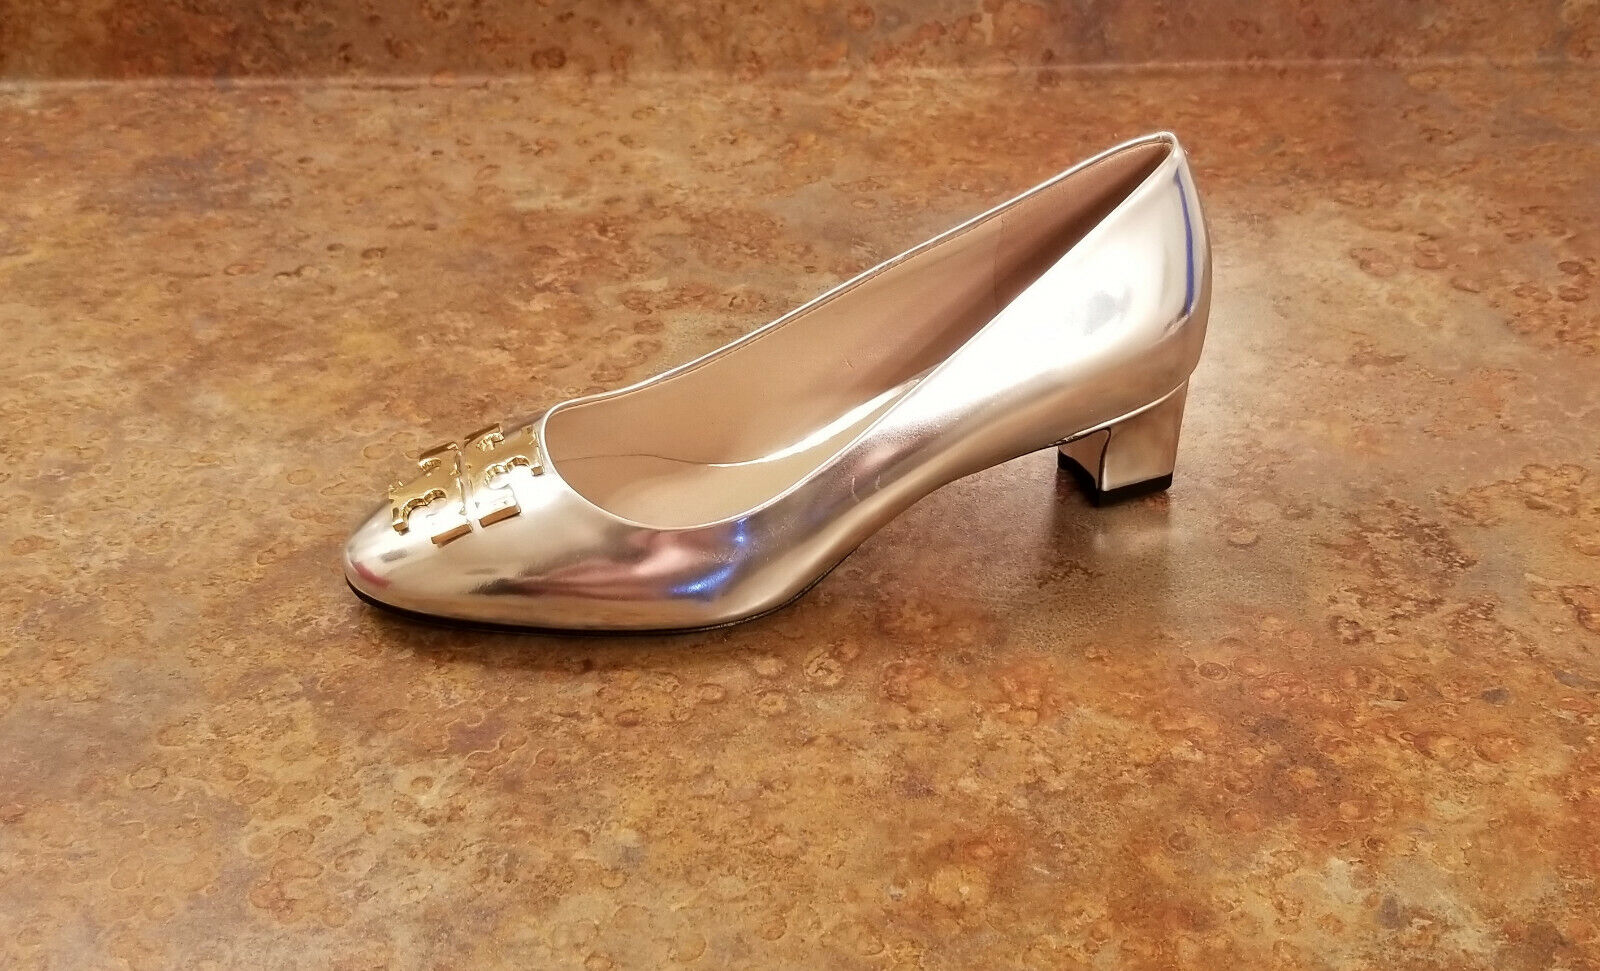 New  Tory Burch 'Raleigh' Metallic Silver 40MM Pumps Womens Size 6.5 M MSRP  295